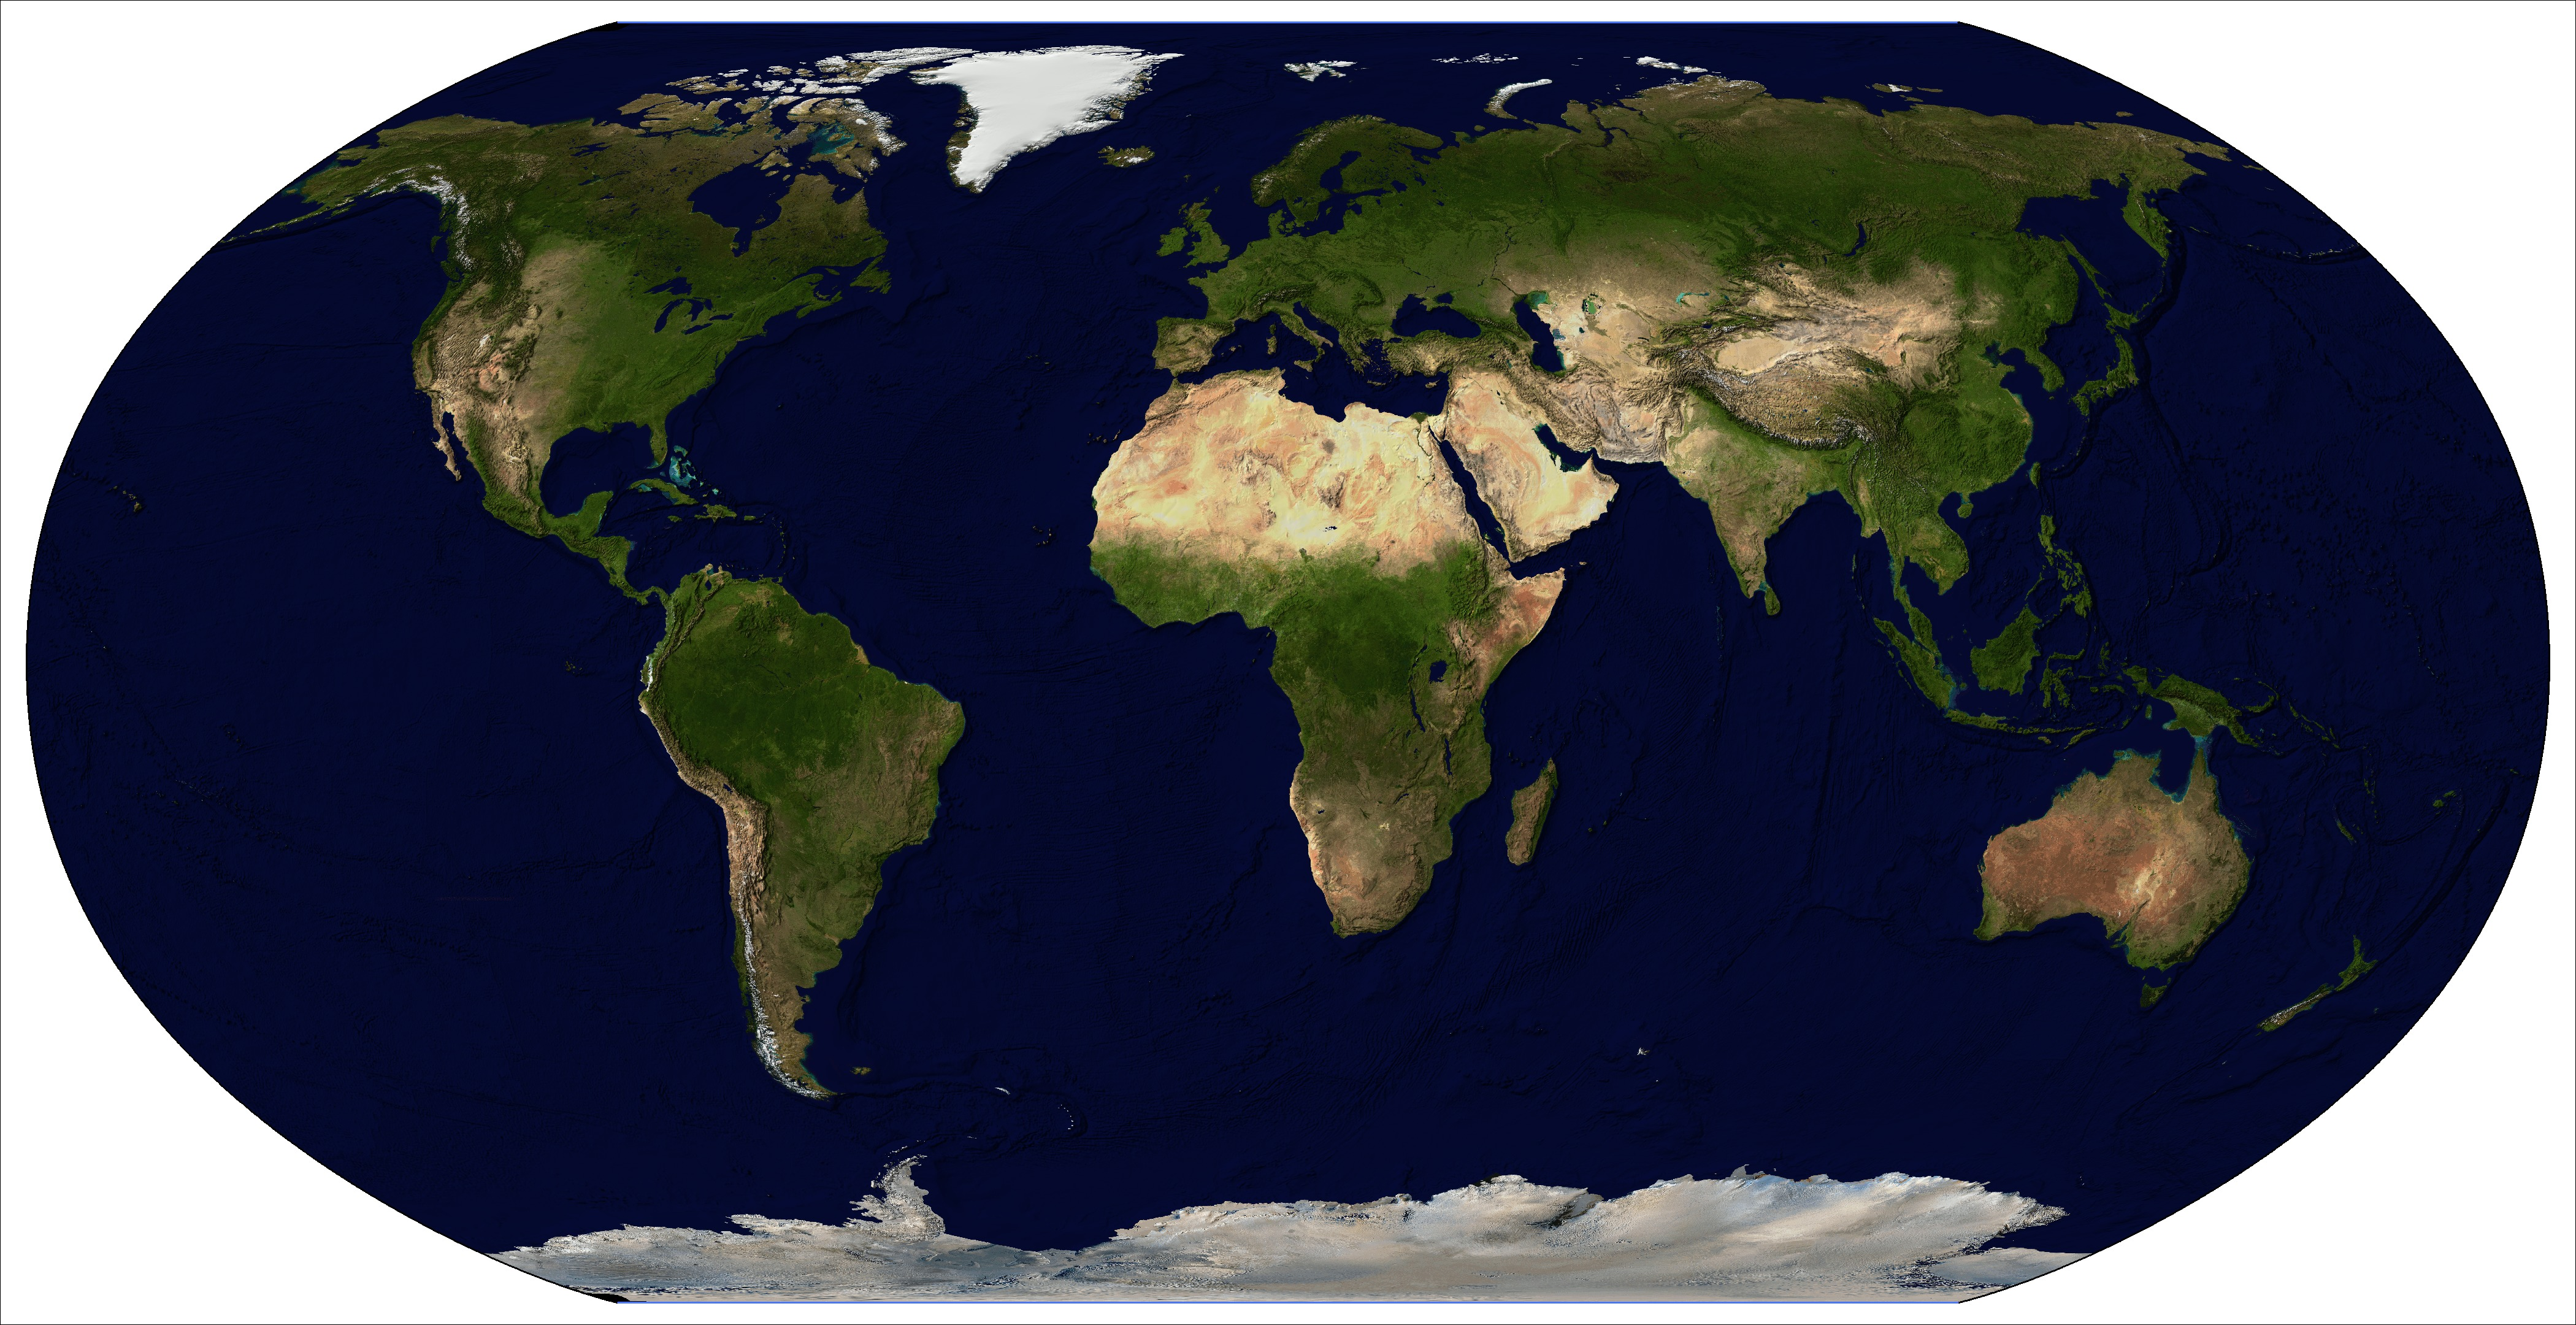 Free political png hd transparent political hdg images pluspng world map hd png best of bluemarble free political png hd gumiabroncs Image collections